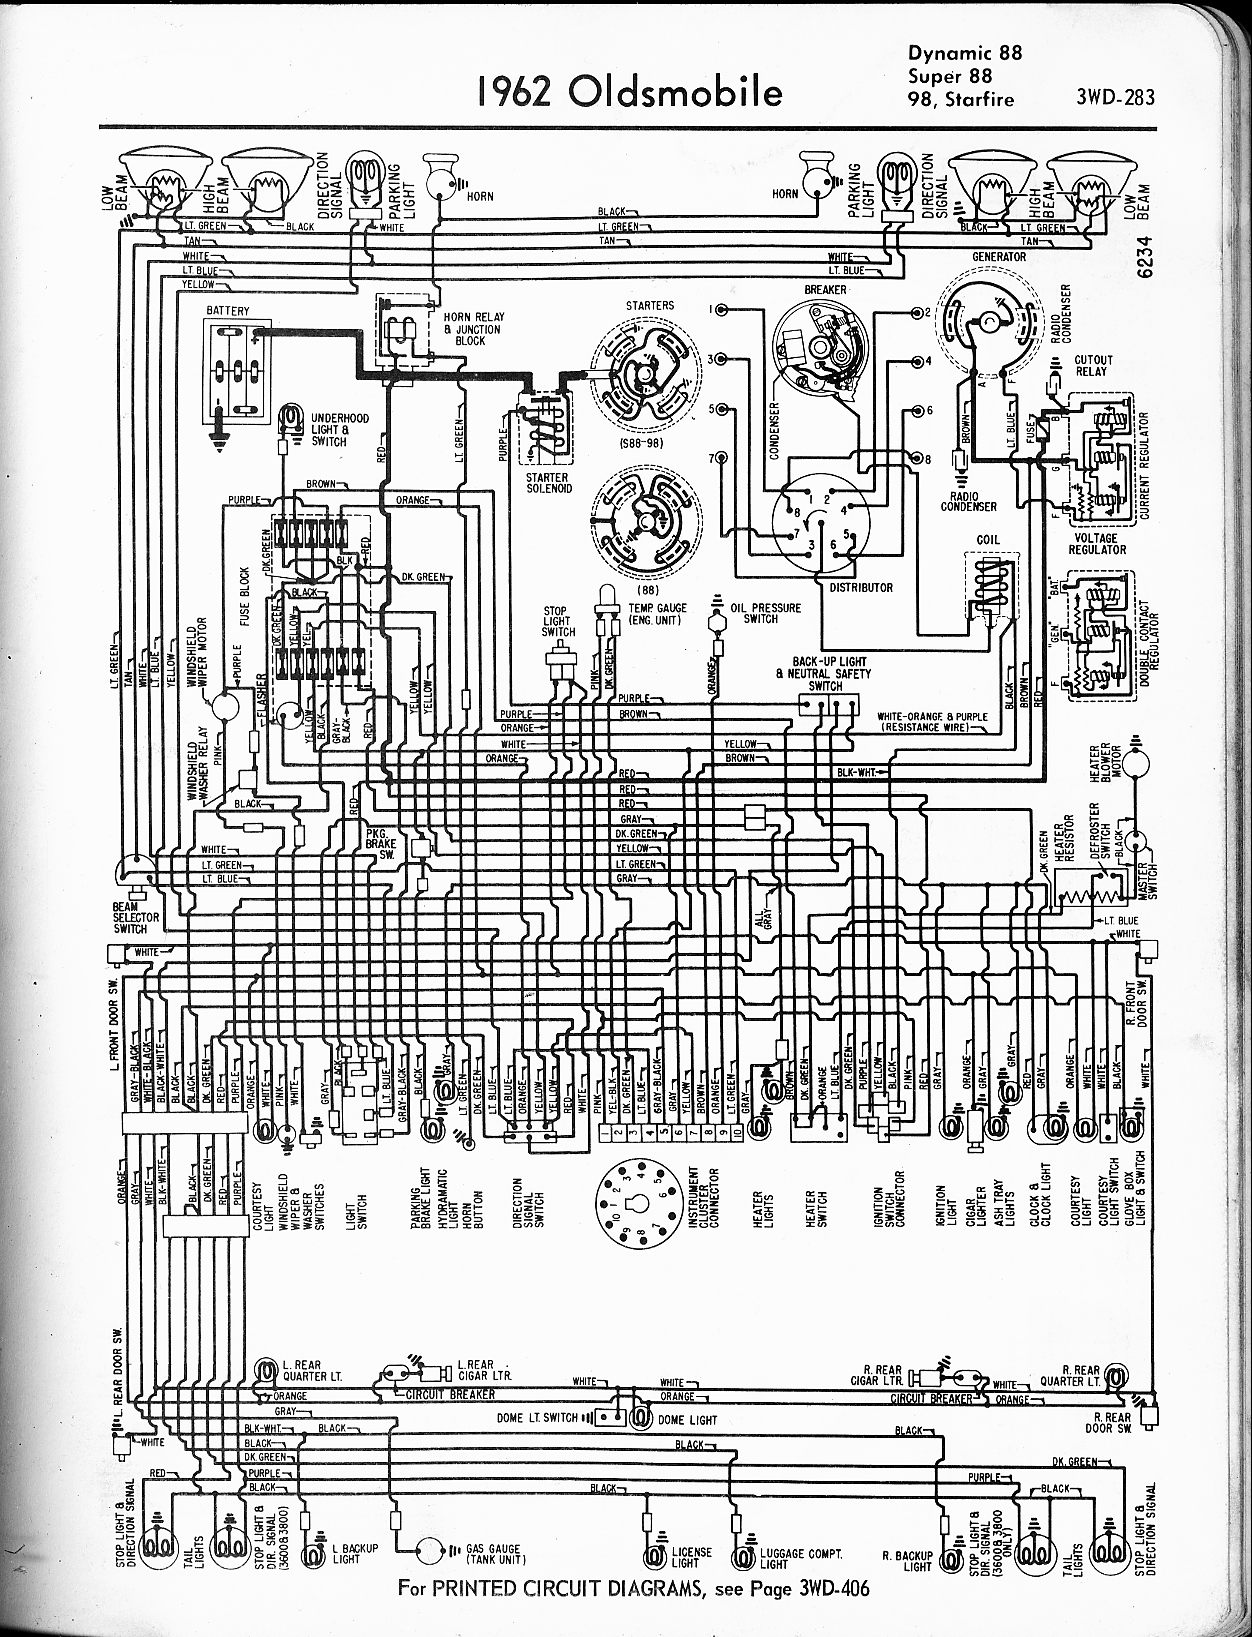 1966 olds 98 generator wiring diagram schematic ideas autronic eye wiring diagram 1953 olds